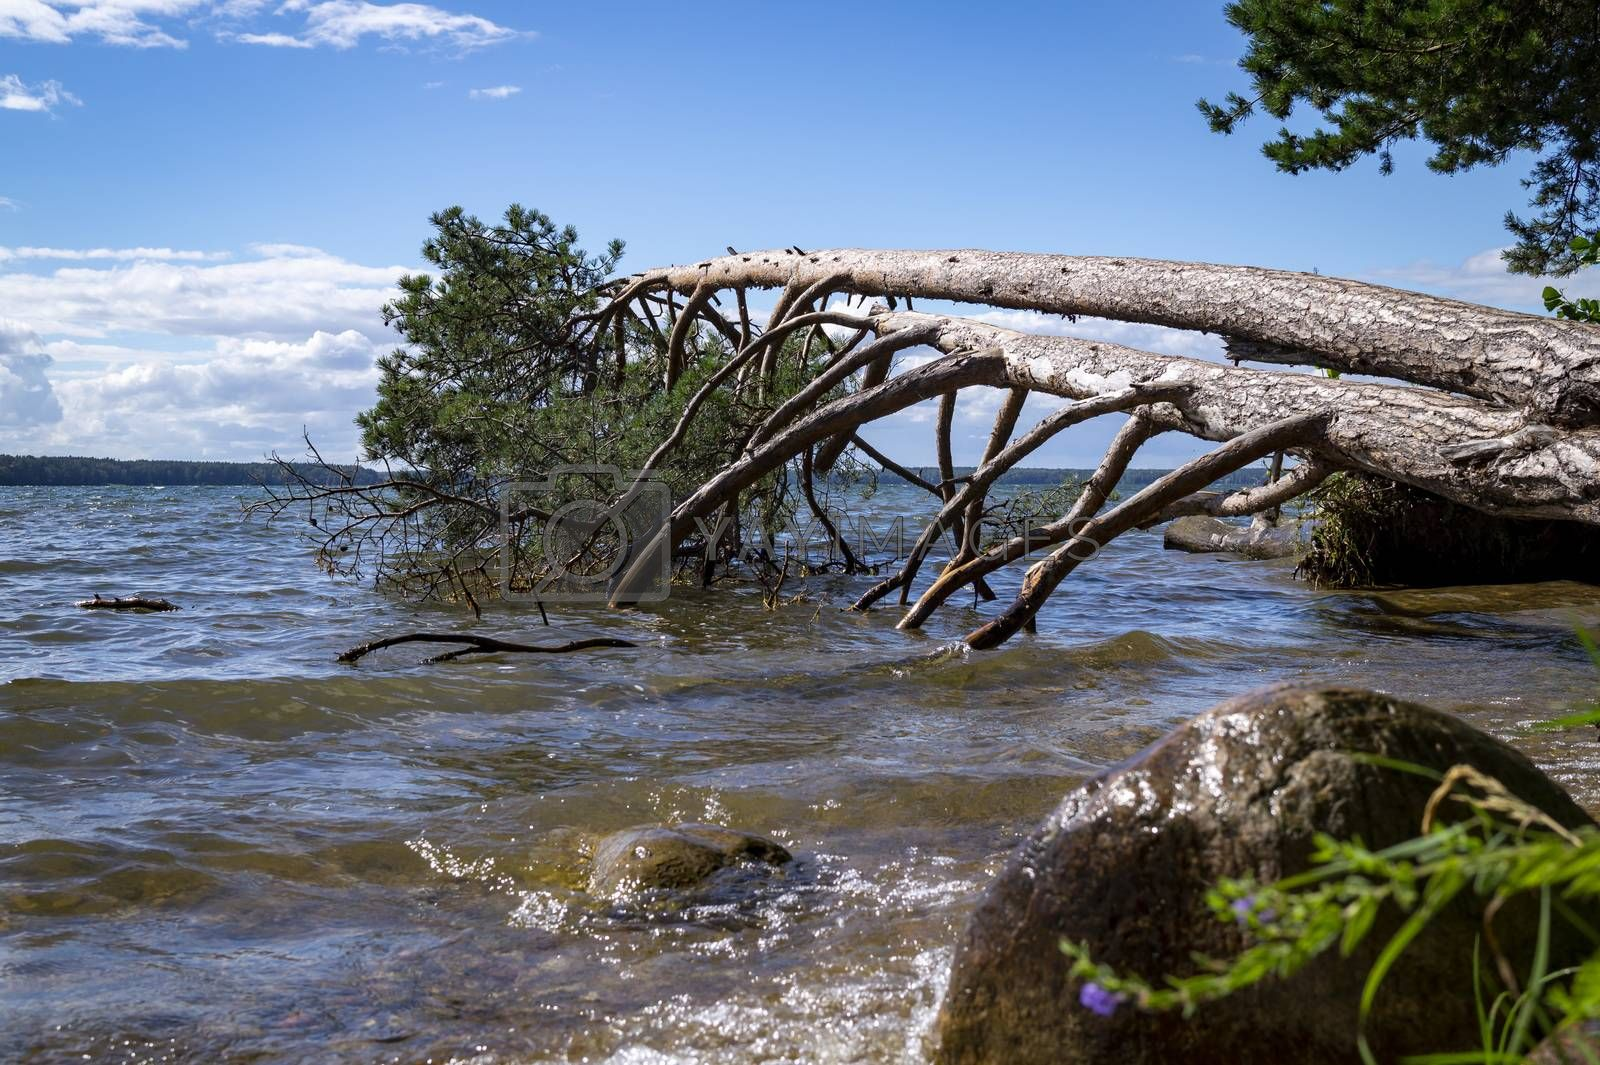 Large tree fallen into the sea during a storm lying supported on the branches above the water in a low angle view from the beach against a sunny blue sky